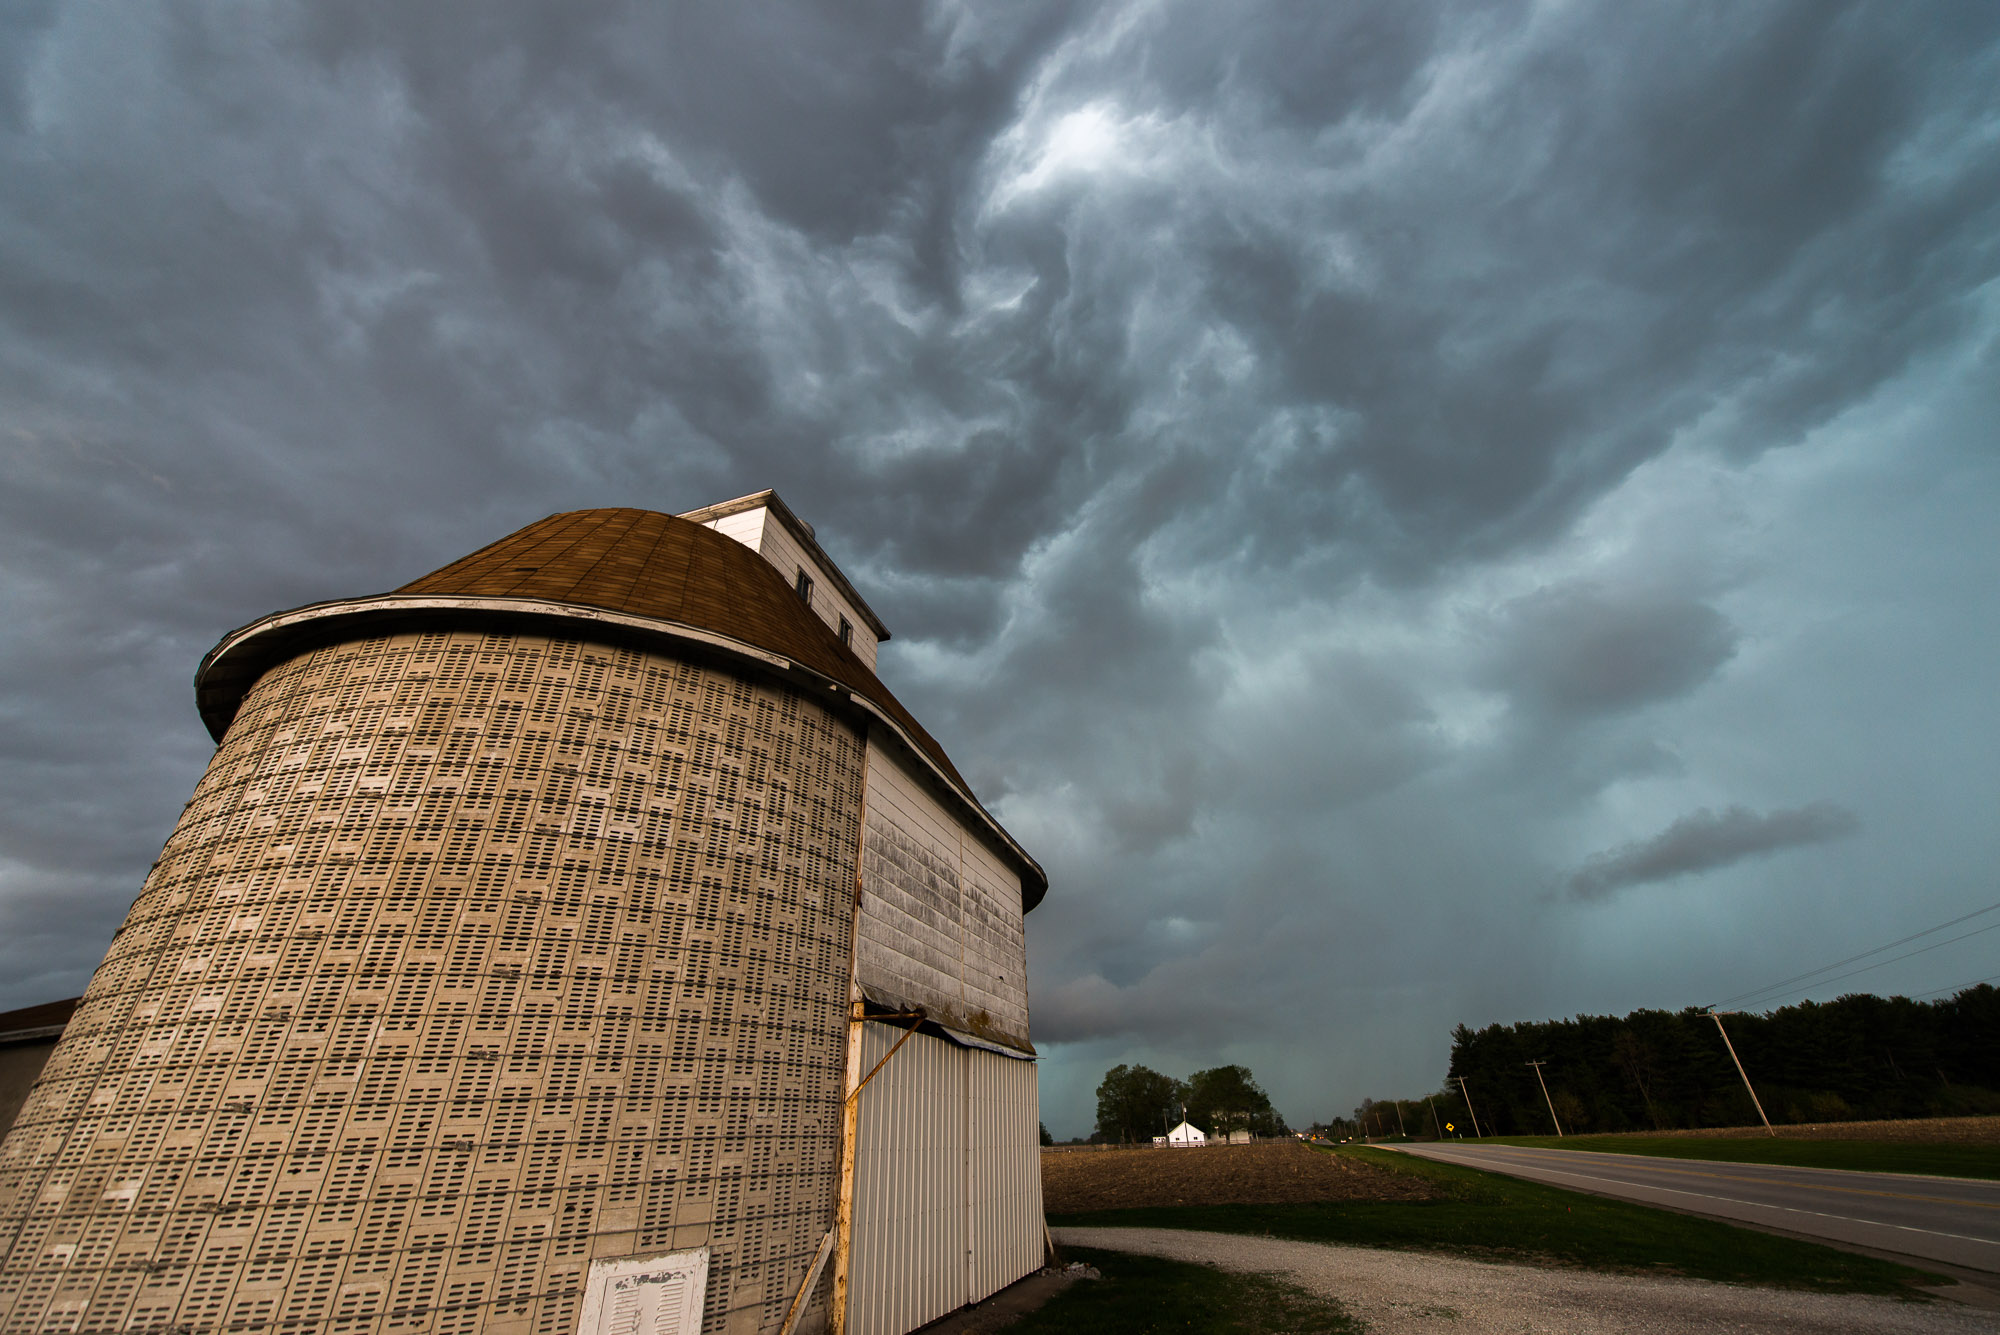 Round barn and squall line - Biggsville, Illinois